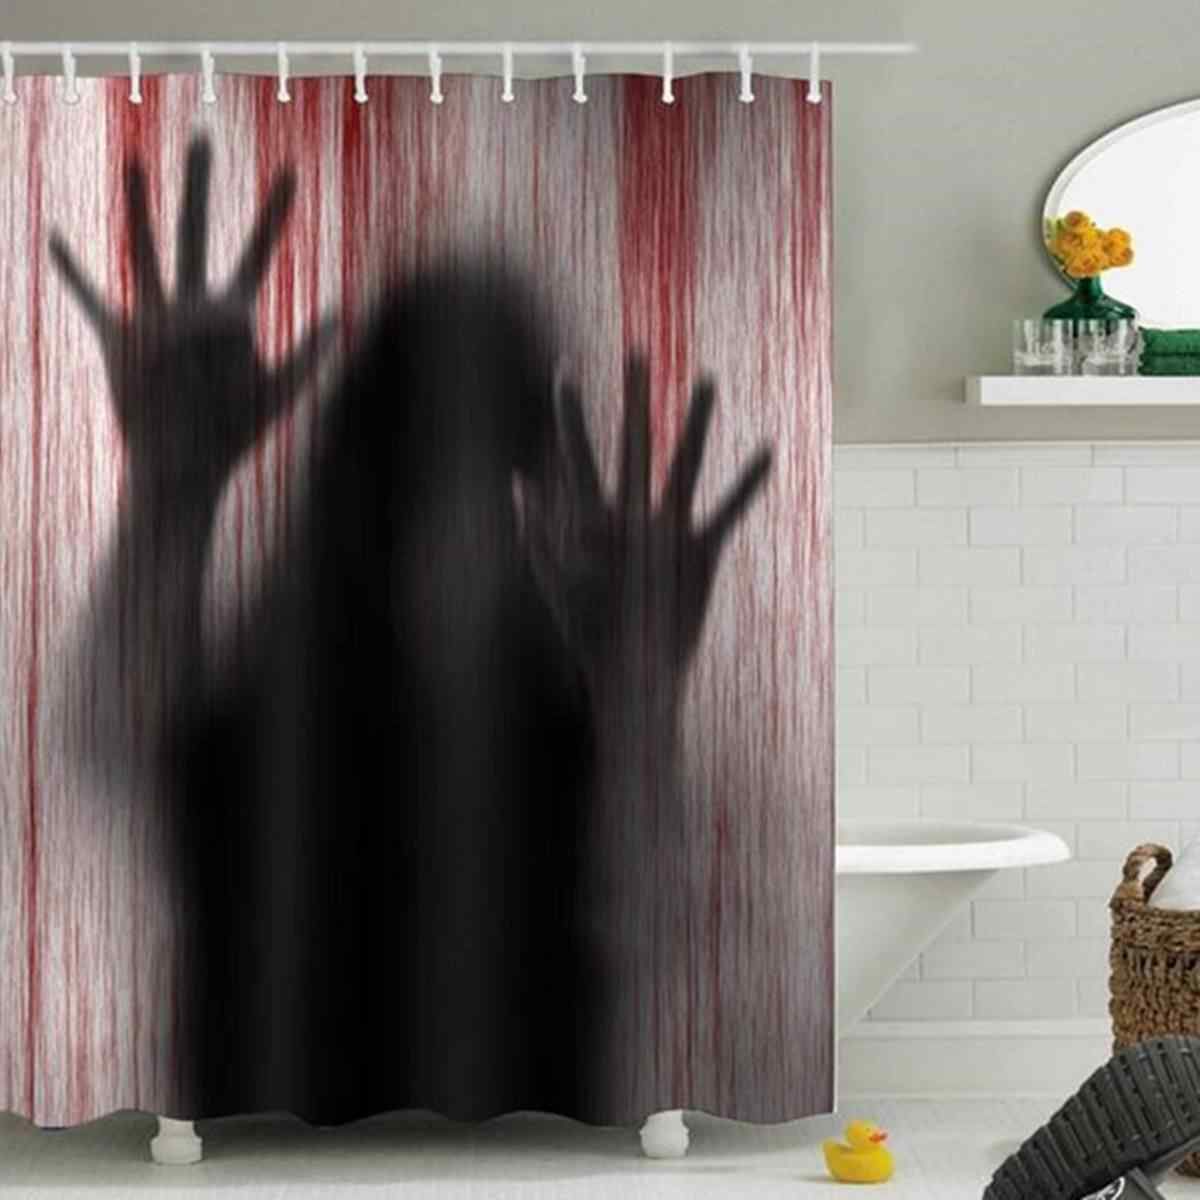 Shower Curtain Halloween Horror Psycho Bloody Hands Bathroom Bath Shower Curtains Decor Gift Waterproof Polyester Bathroom Curta